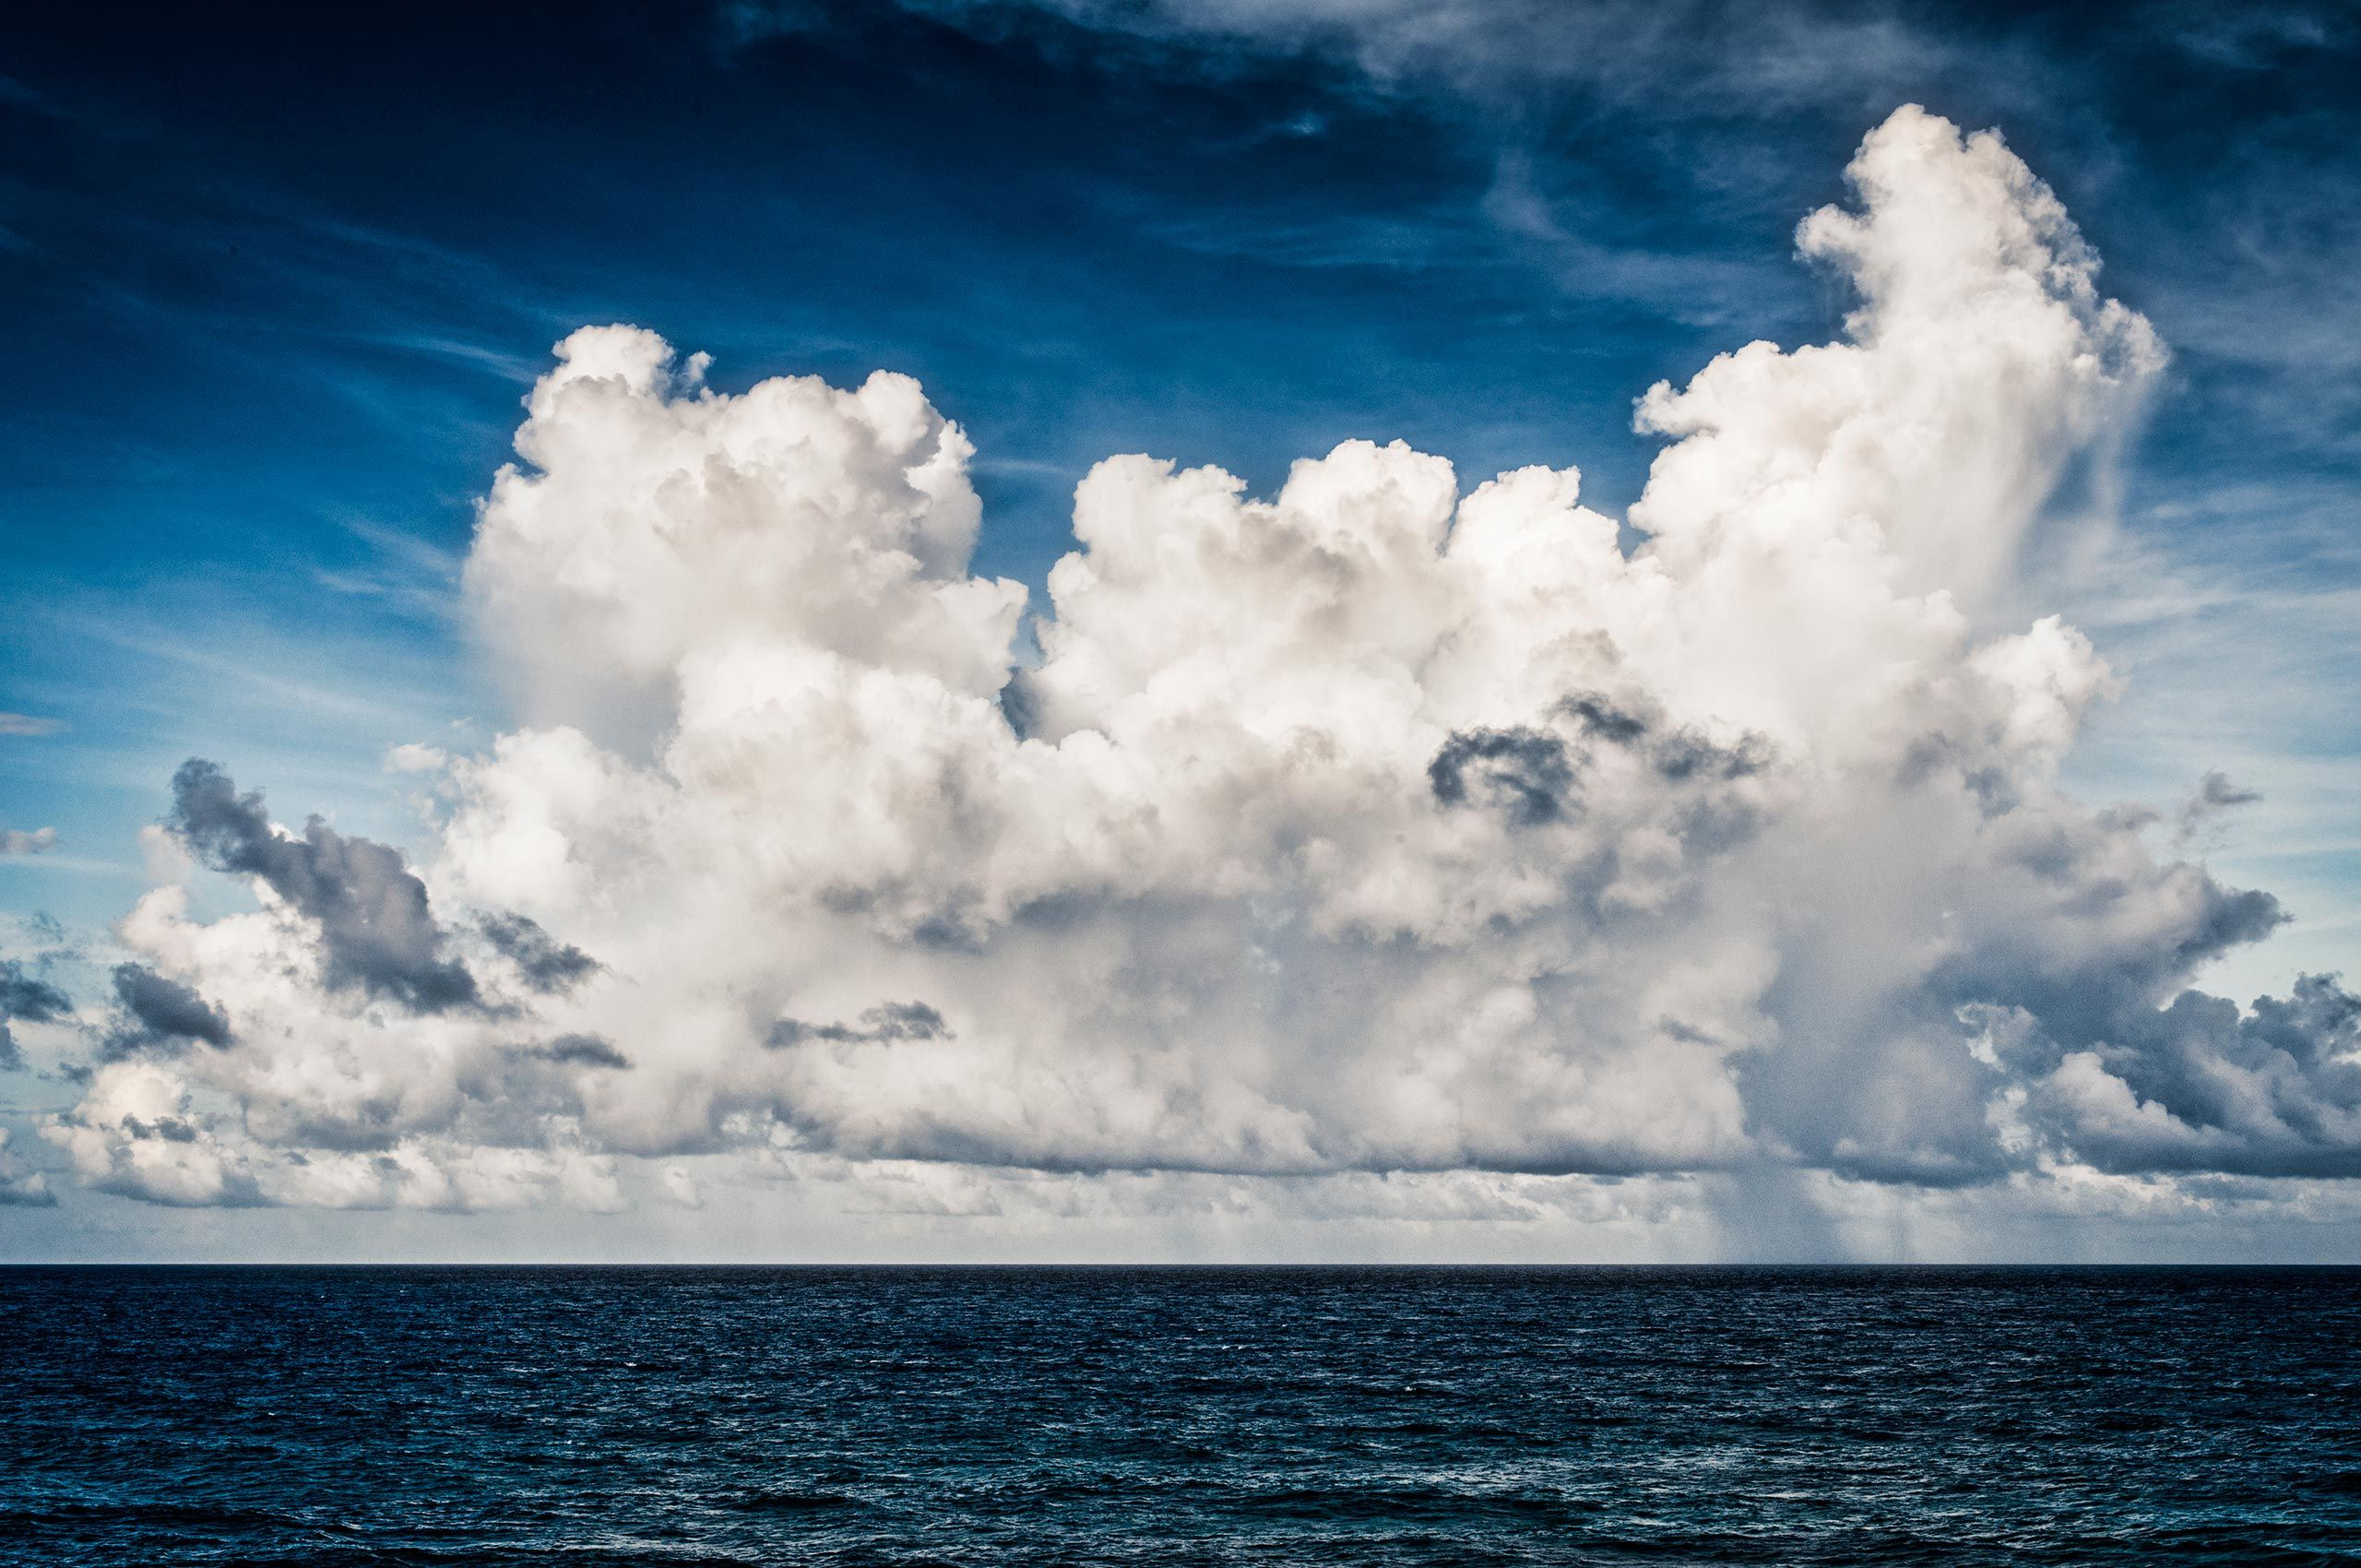 clouds-over-ocean-HenrikOlundPhotography.jpg